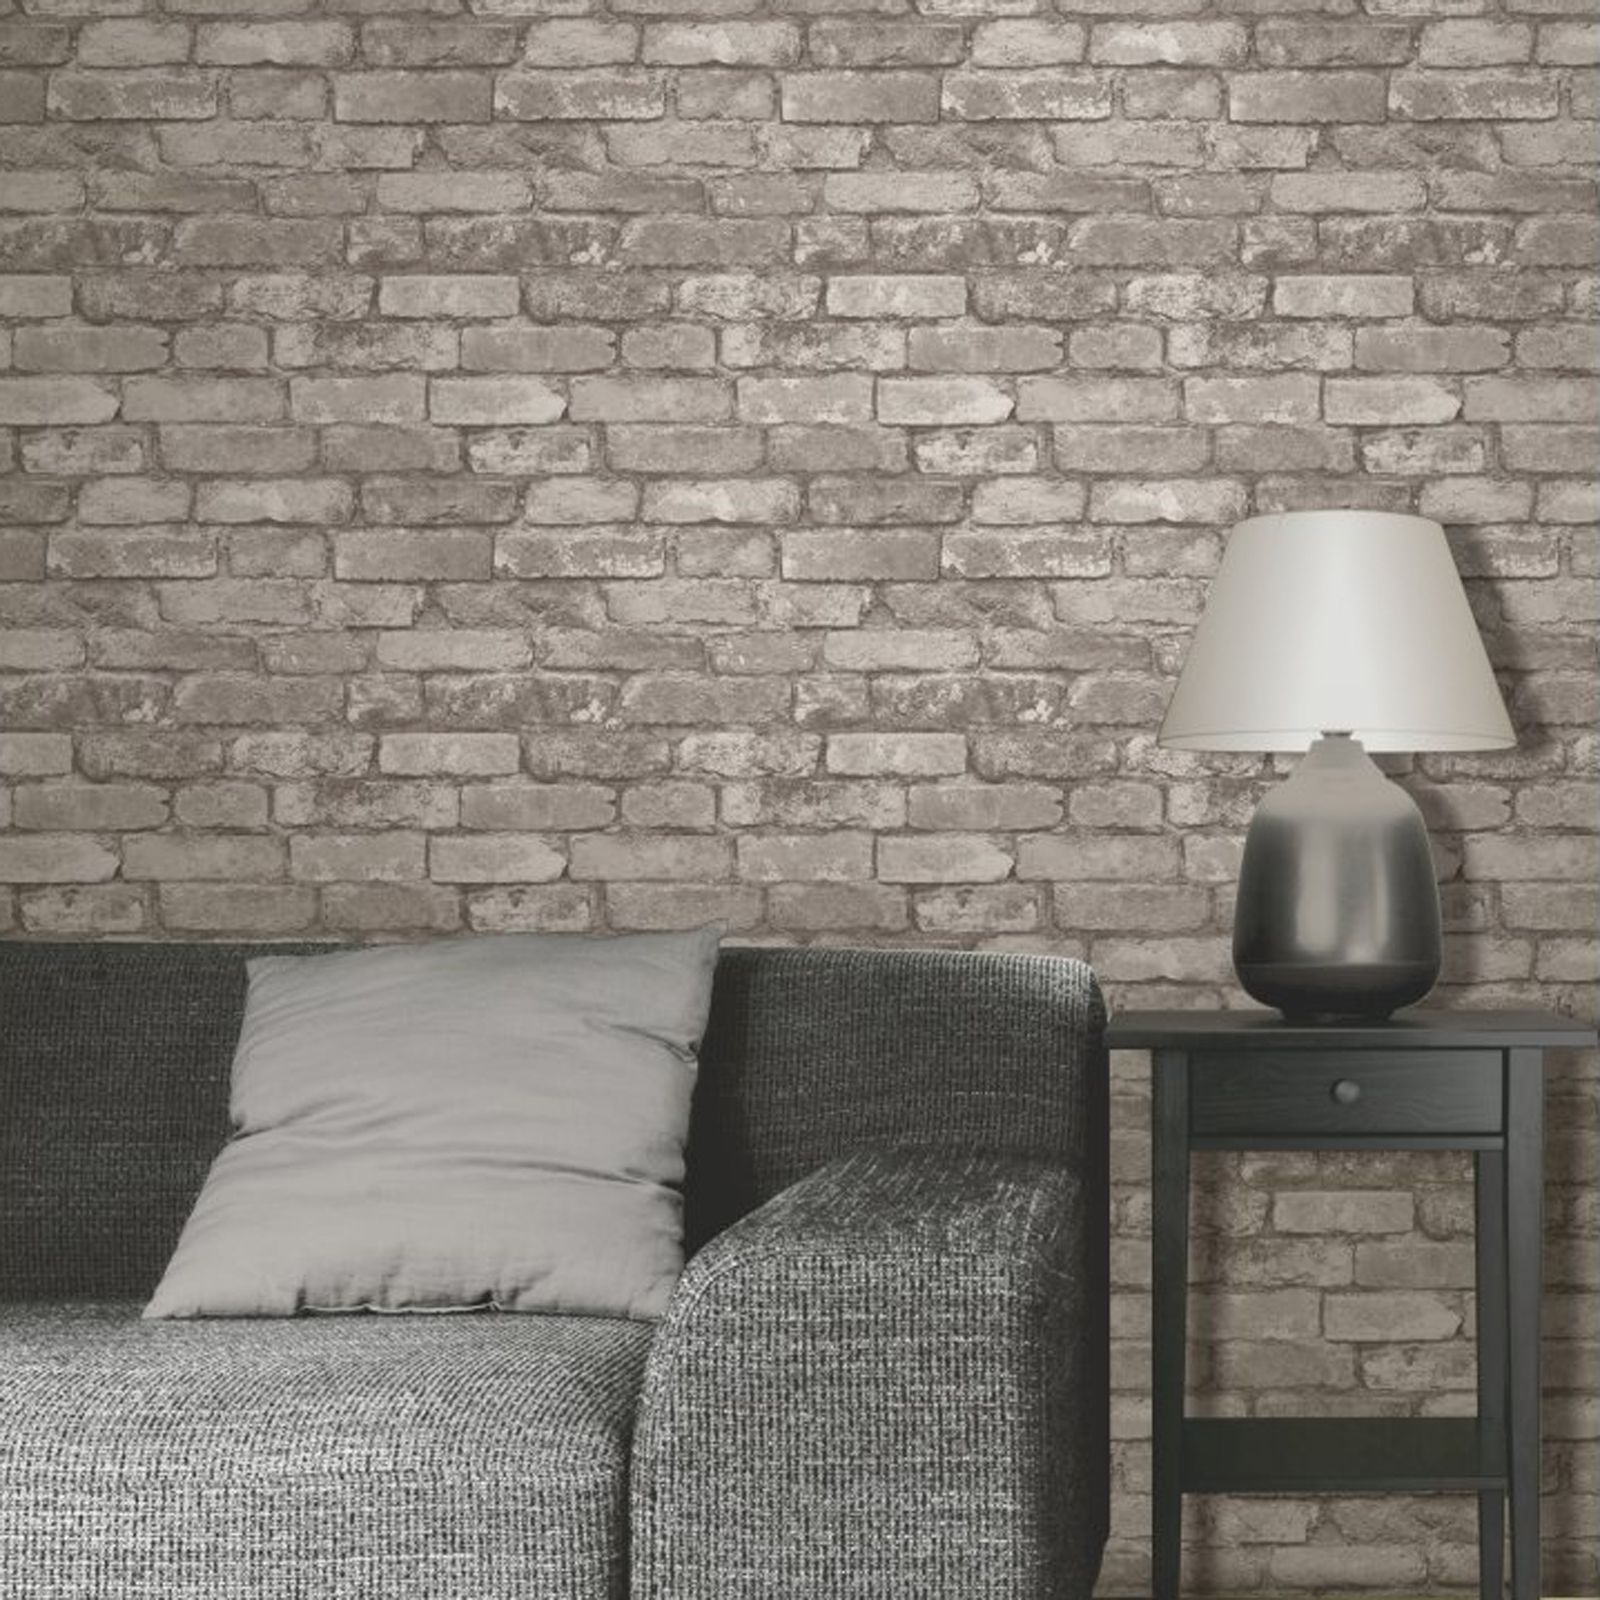 Details about RUSTIC BRICK EFFECT WALLPAPER 10m SILVER GREY NEW 1600x1600